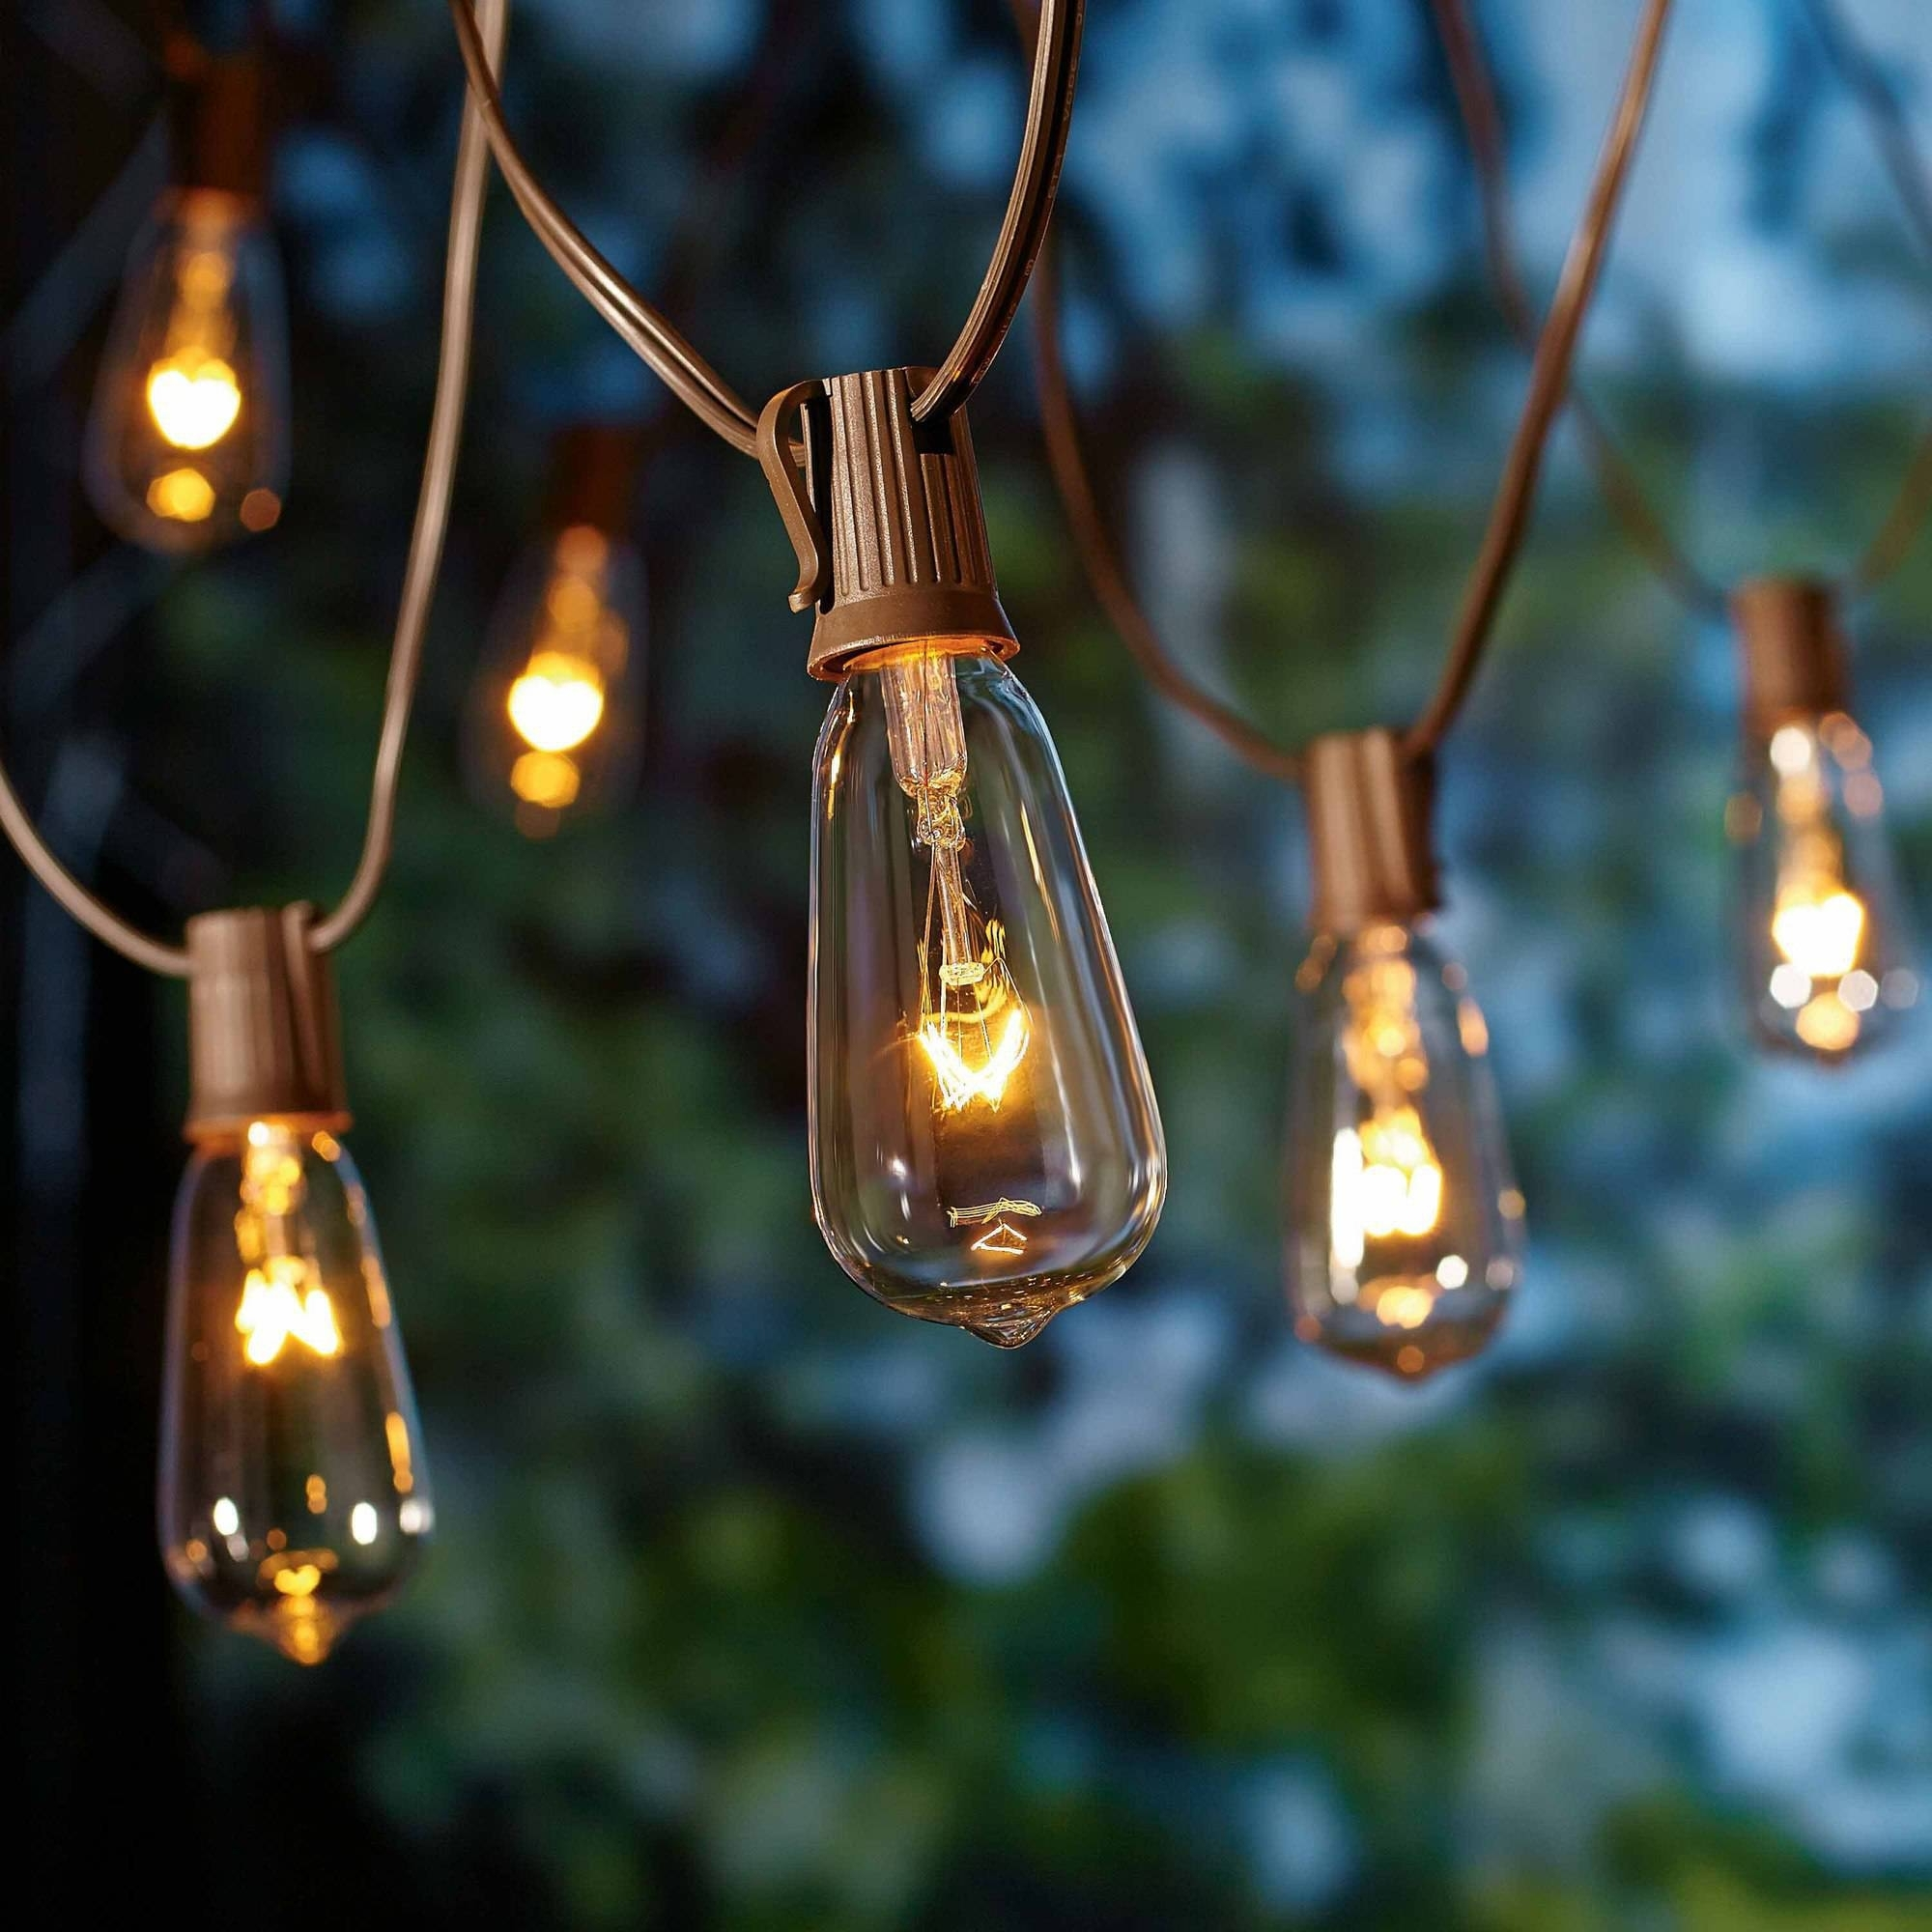 Better Homes And Gardens Outdoor Glass Edison String Lights, 10 Throughout Most Popular Outdoor String Lanterns (View 3 of 20)